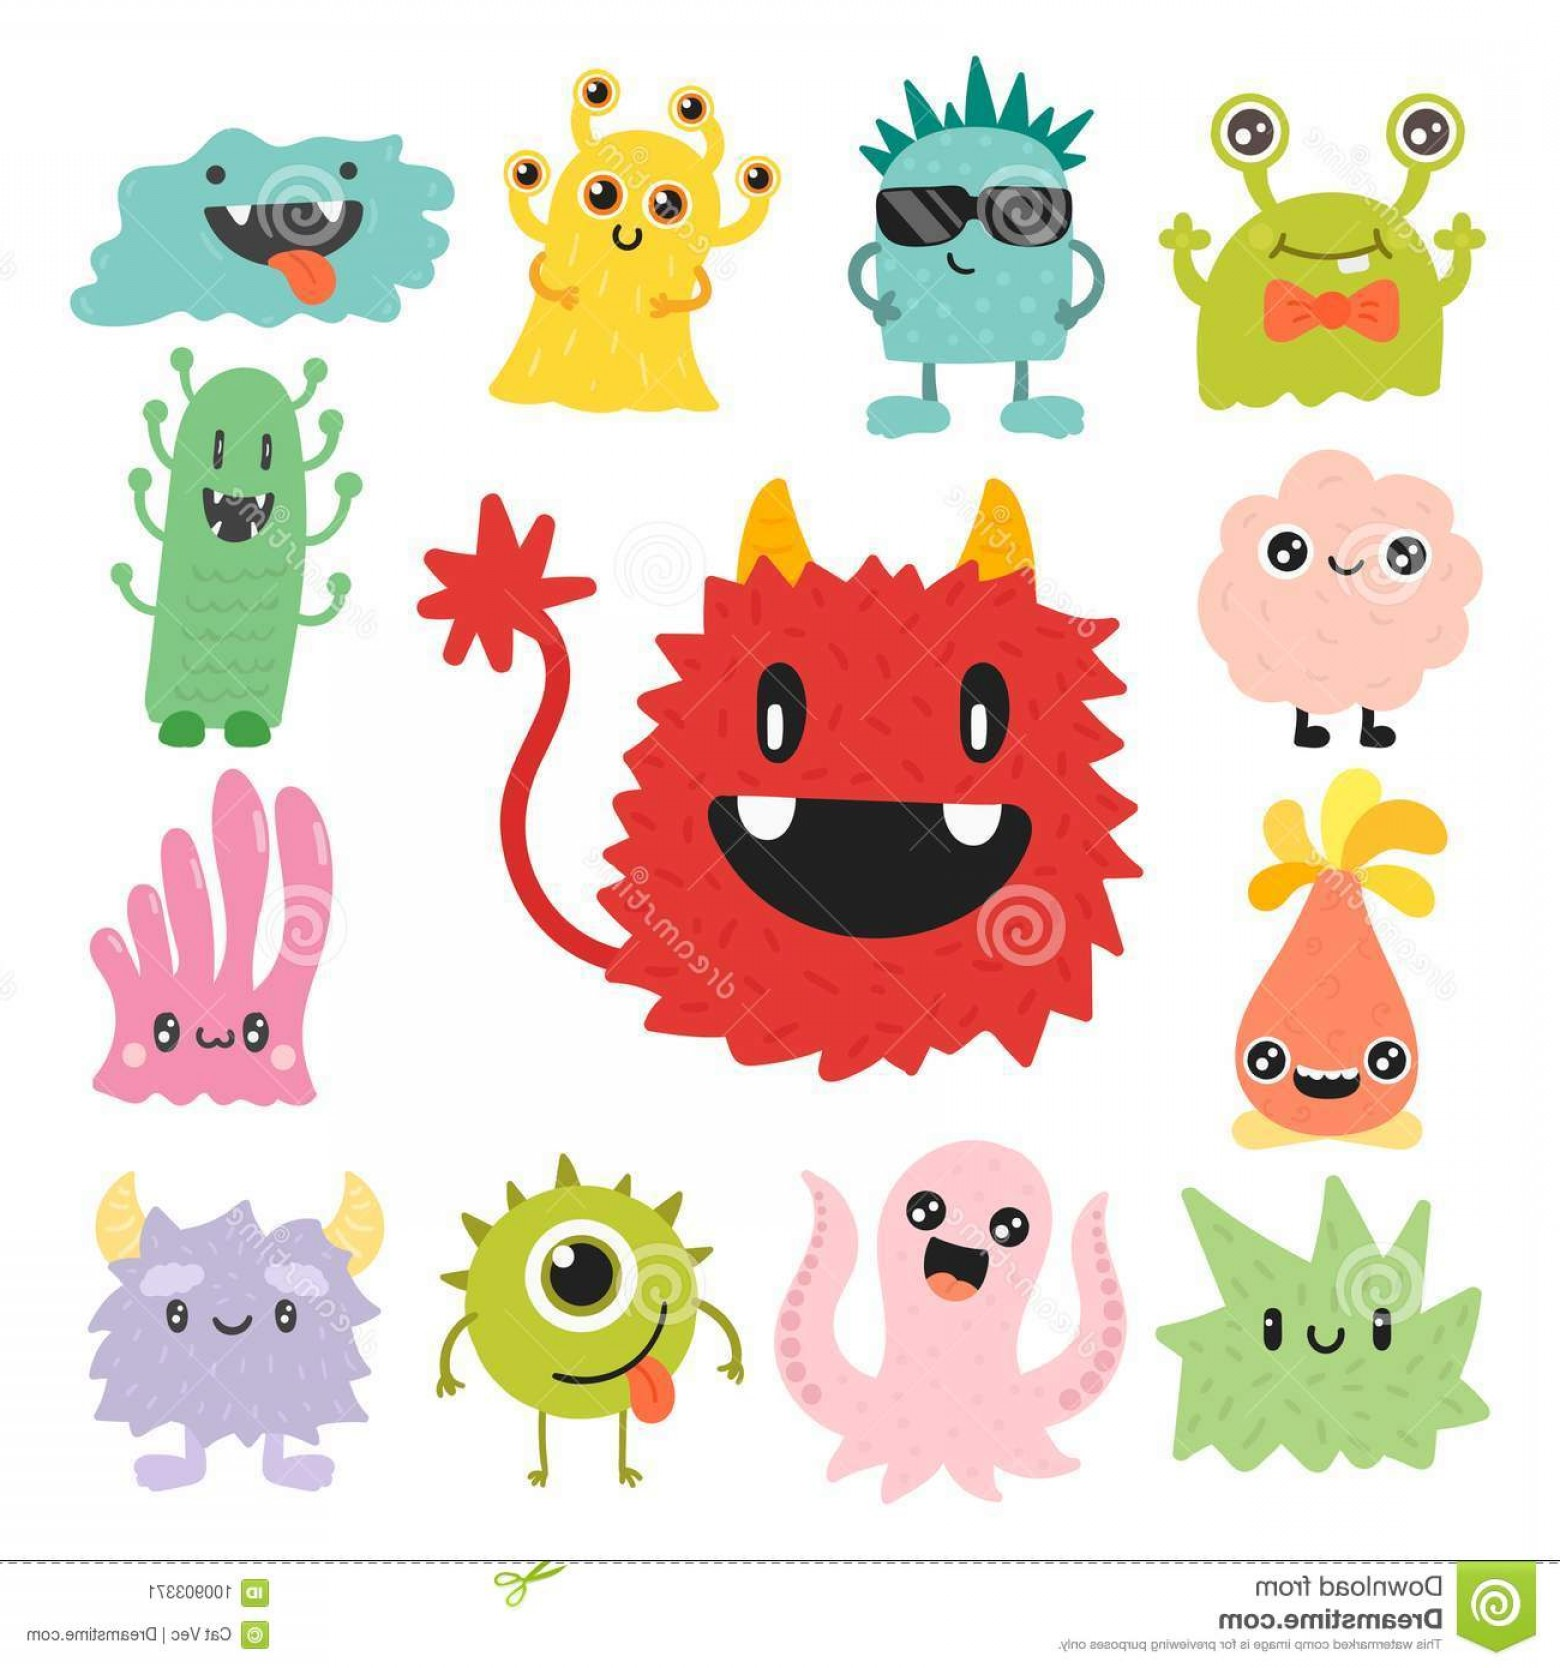 Vector Organisms On A Person: Funny Cartoon Monster Cute Alien Character Creature Happy Illustration Devil Colorful Animal Vector Halloween Cool Gesture Image